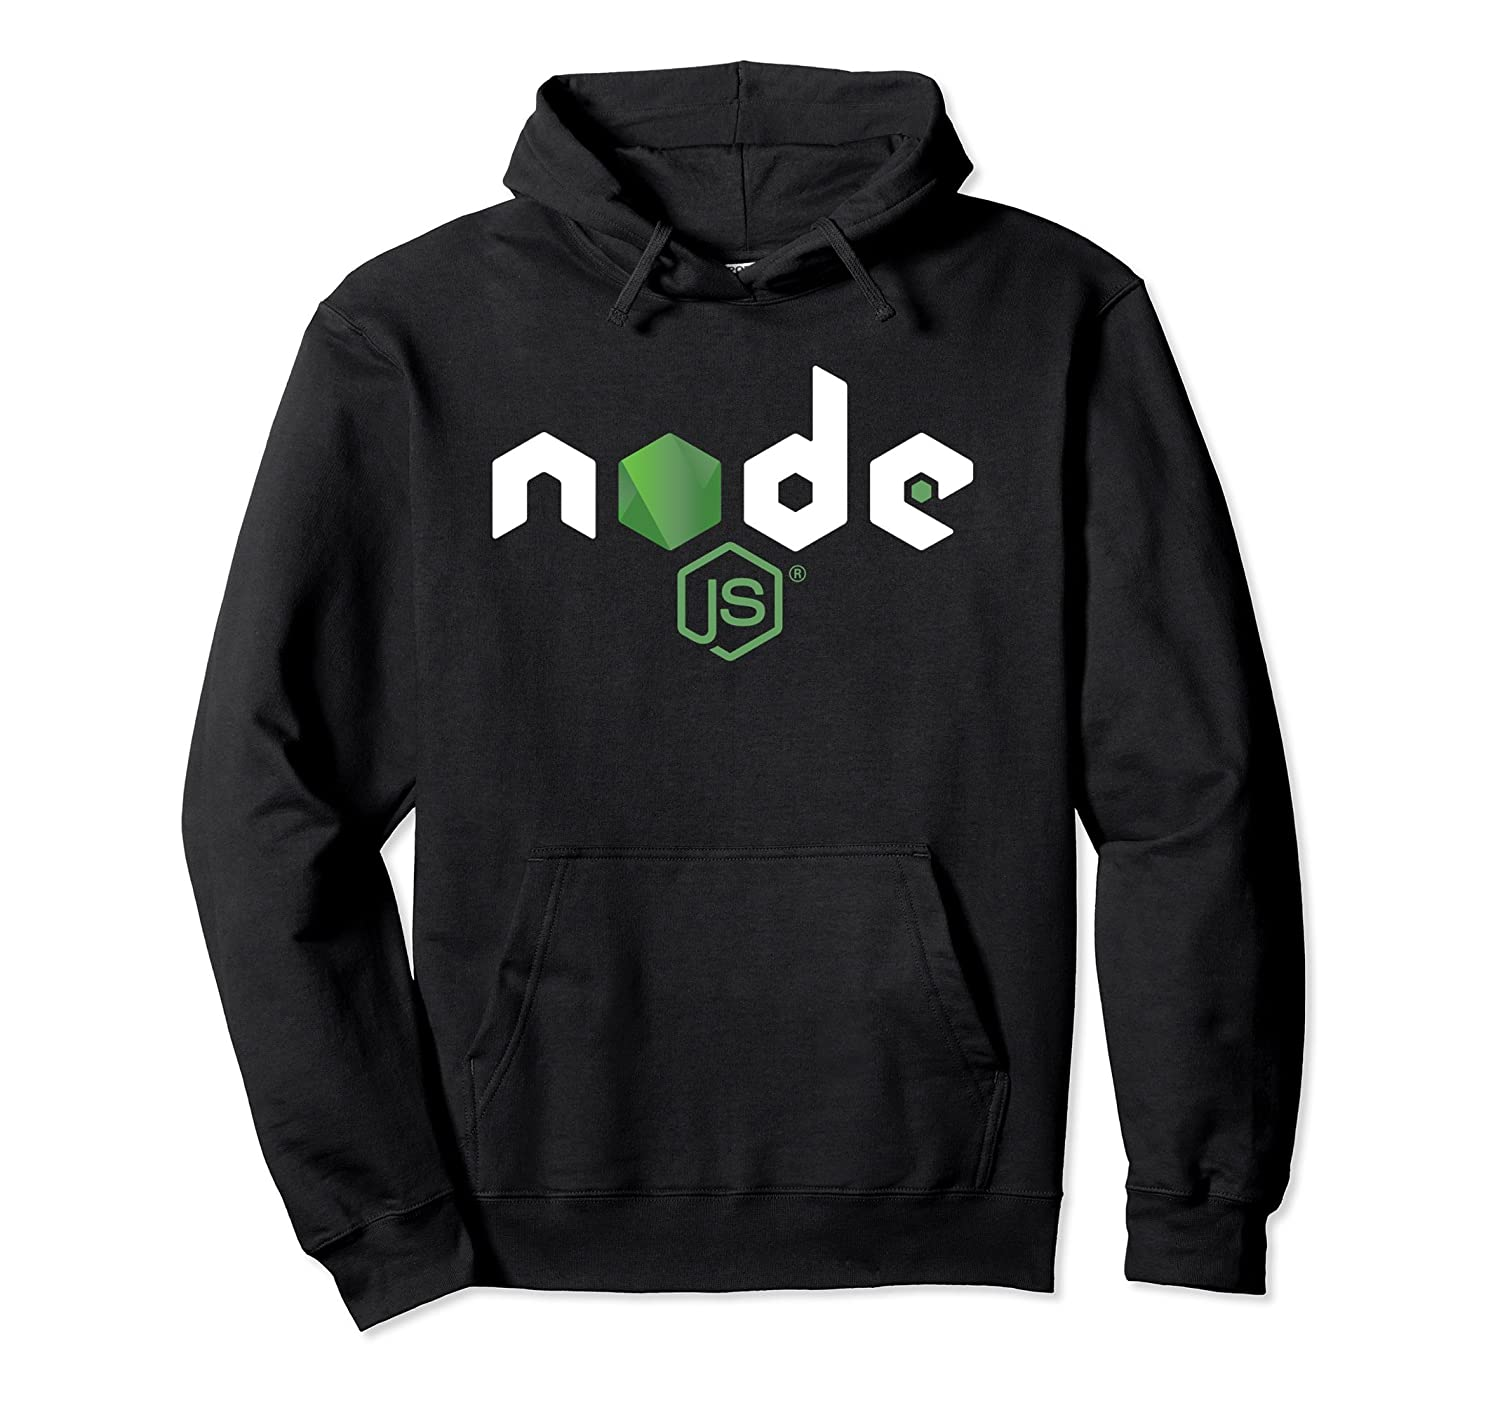 Node JS hoodie pullover-fa